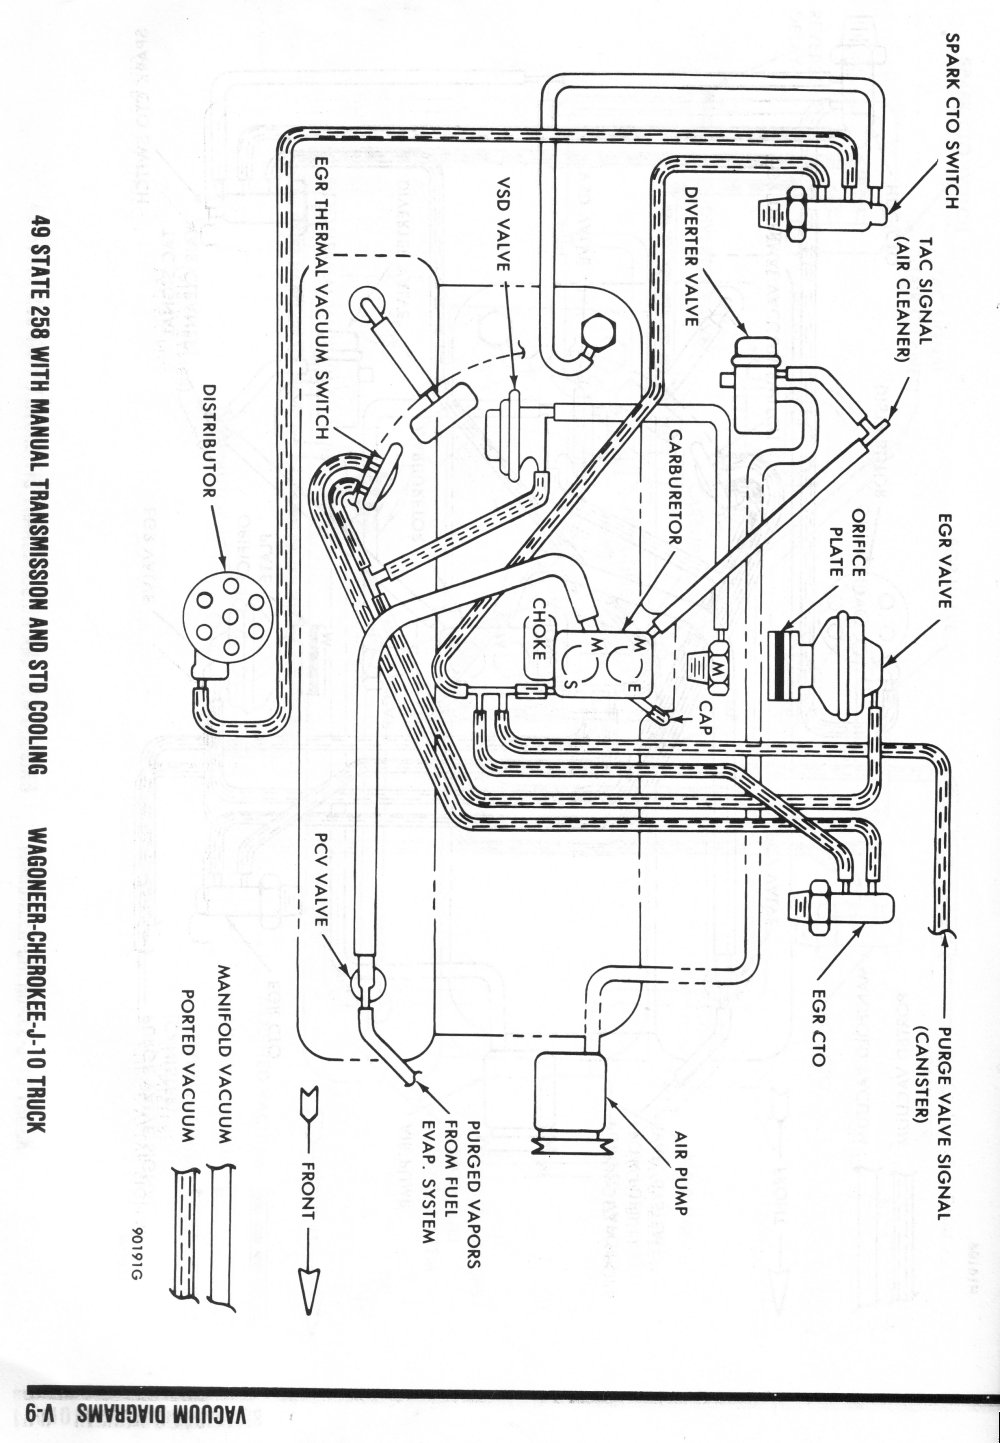 medium resolution of 49 state 258 cherokee wagoneer j10 manual tansmission std cooling